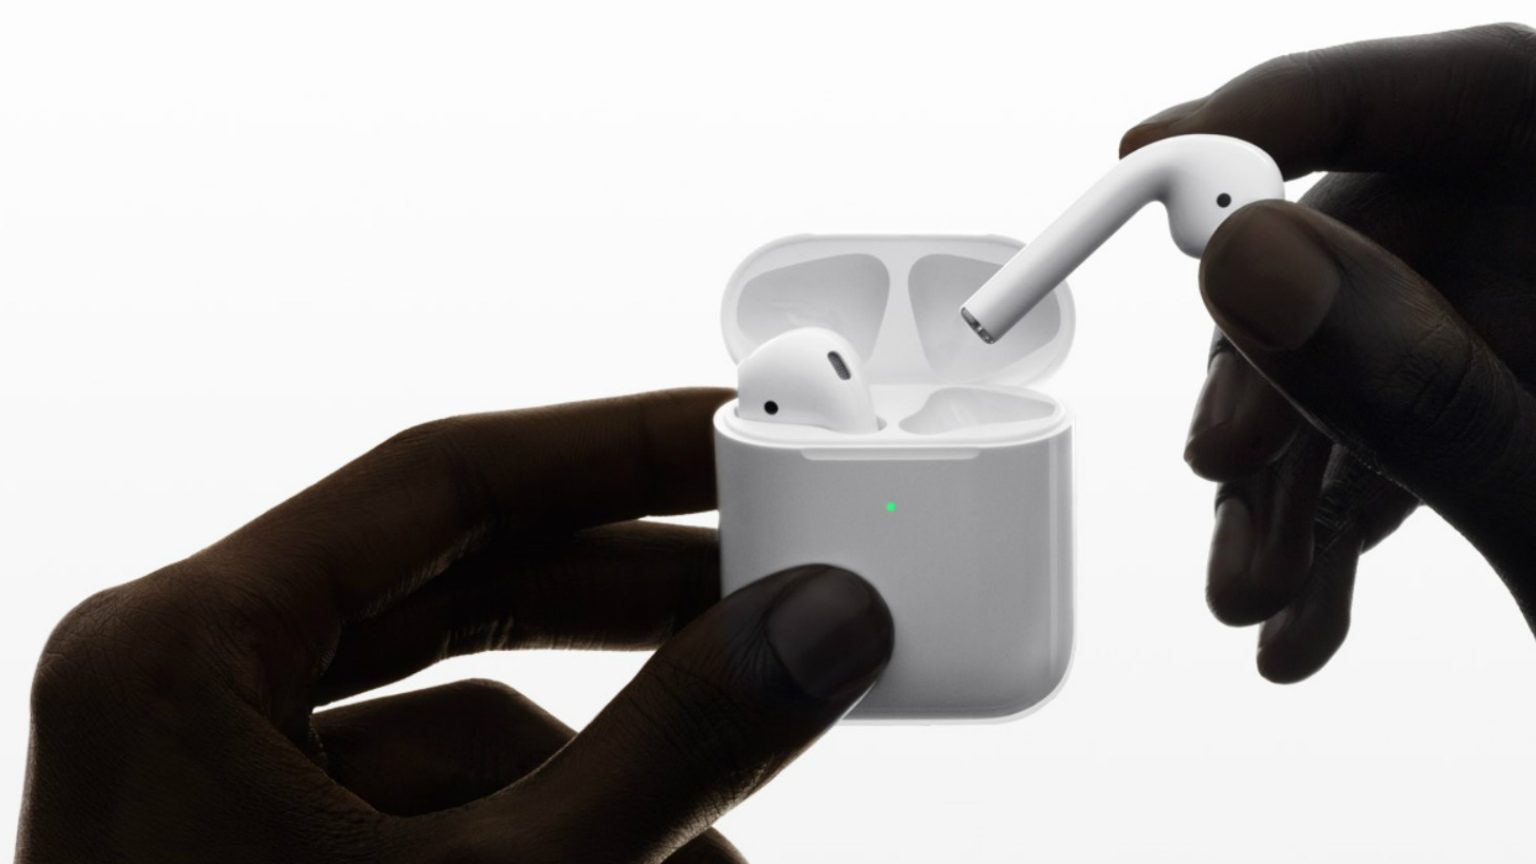 Airpods 2nd generation by Apple